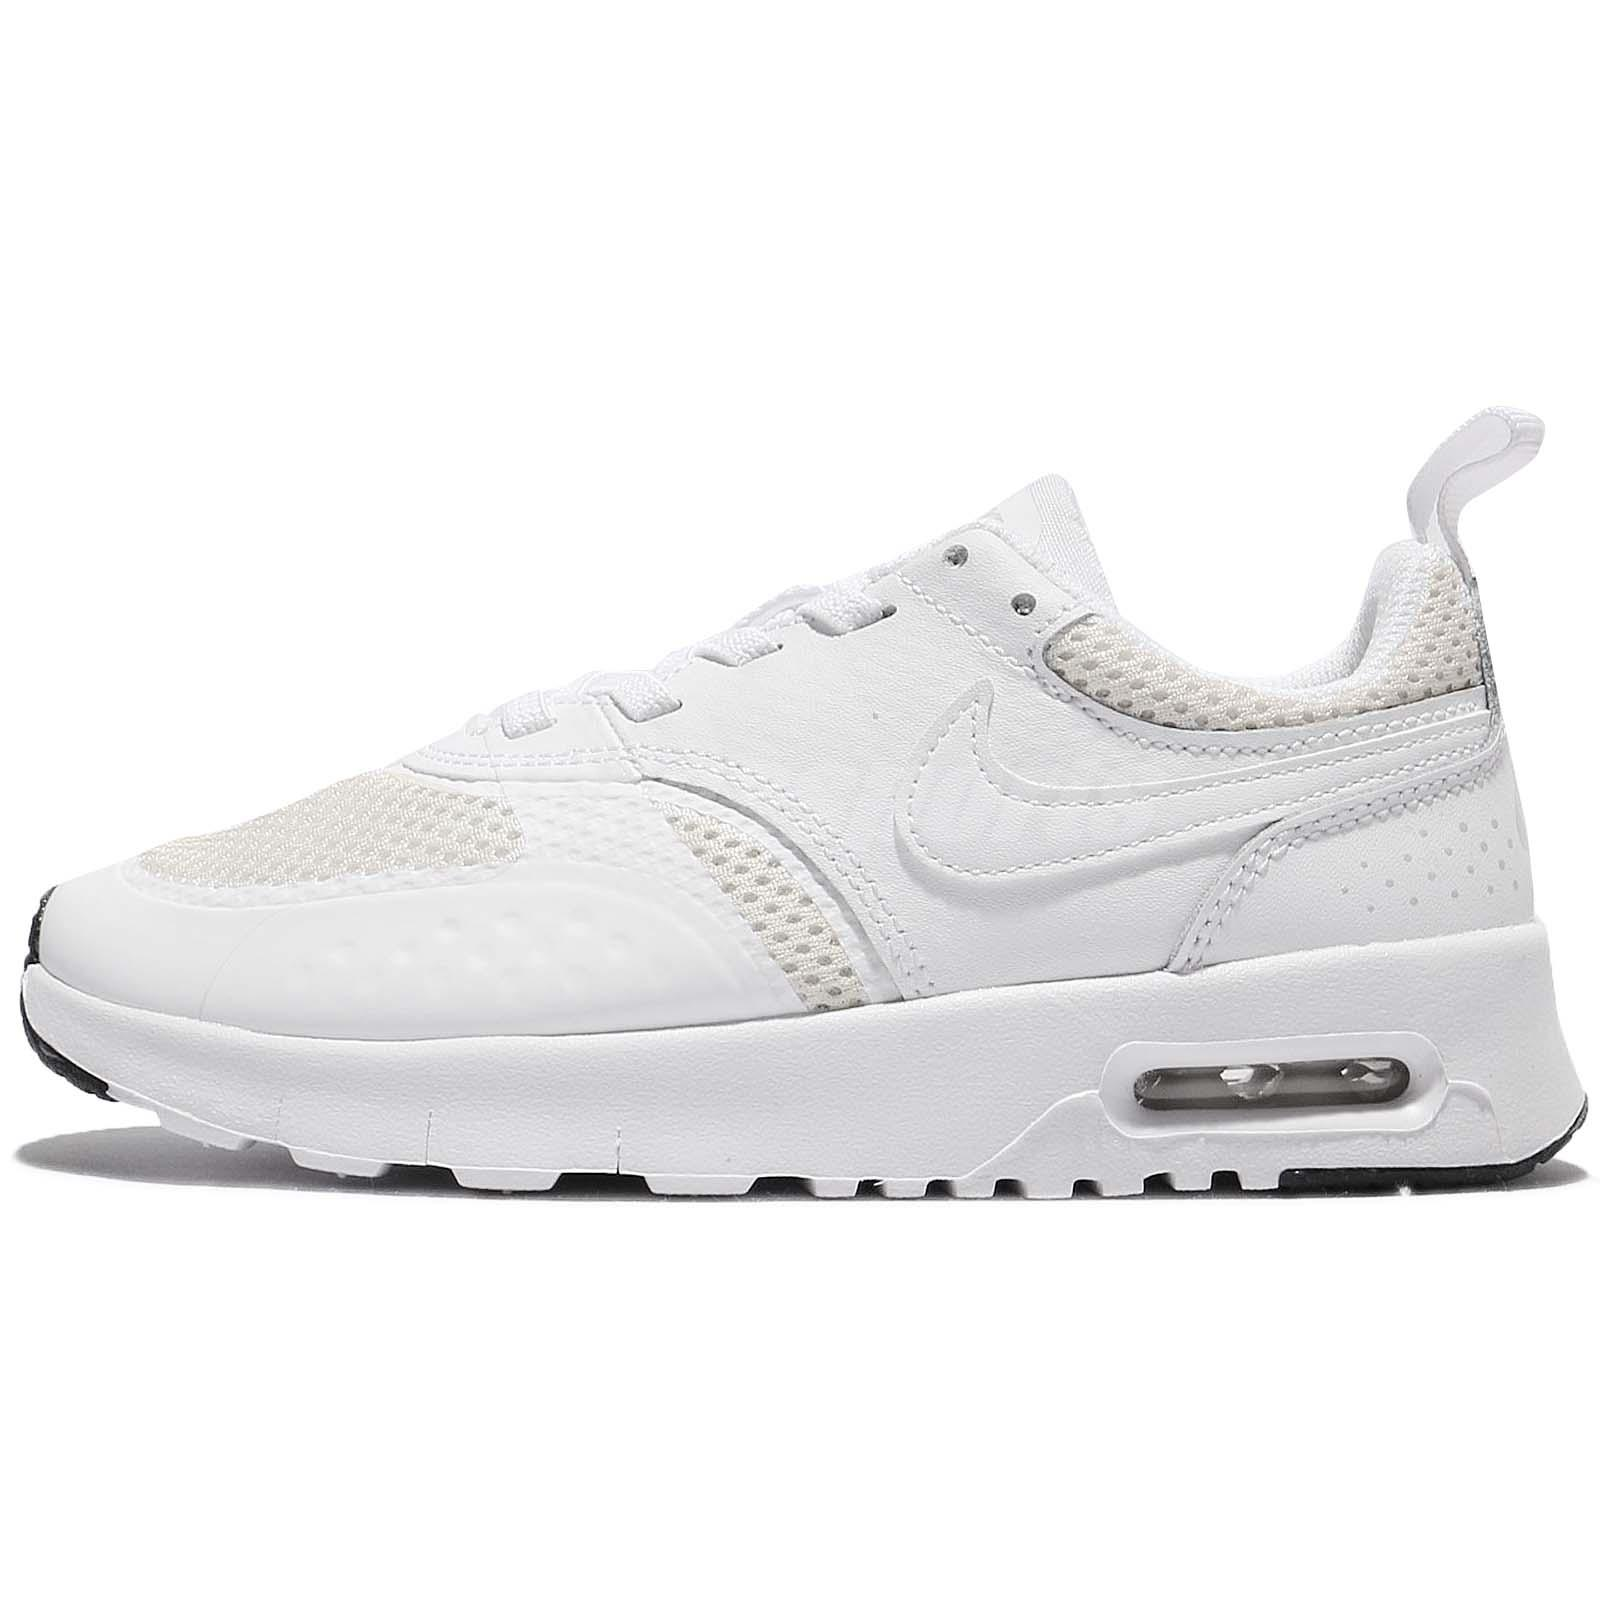 watch 6c770 90740 Nike Air Max Vision PSE White Pure Platinum Preschool Little Kid Shoe  917859-100